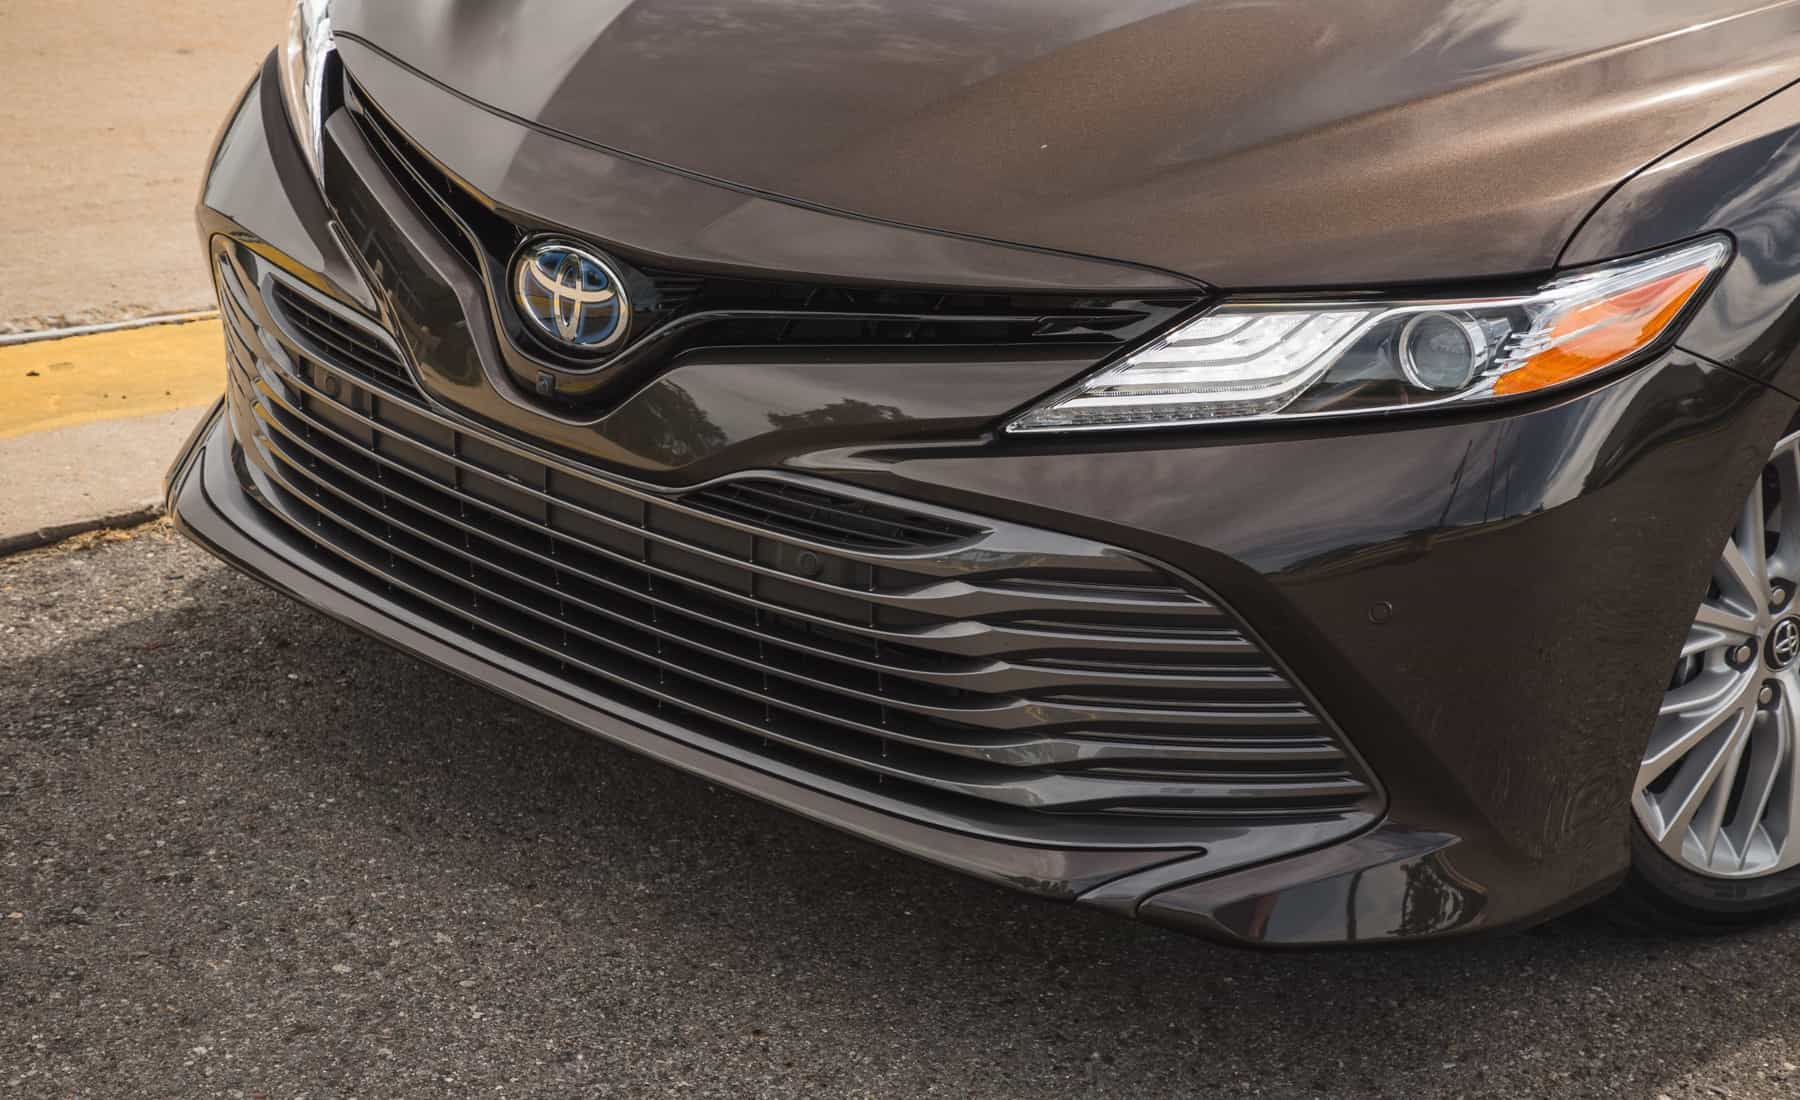 2018 Toyota Camry Hybrid XLE Exterior View Grille And Bumper (Photo 9 of 41)